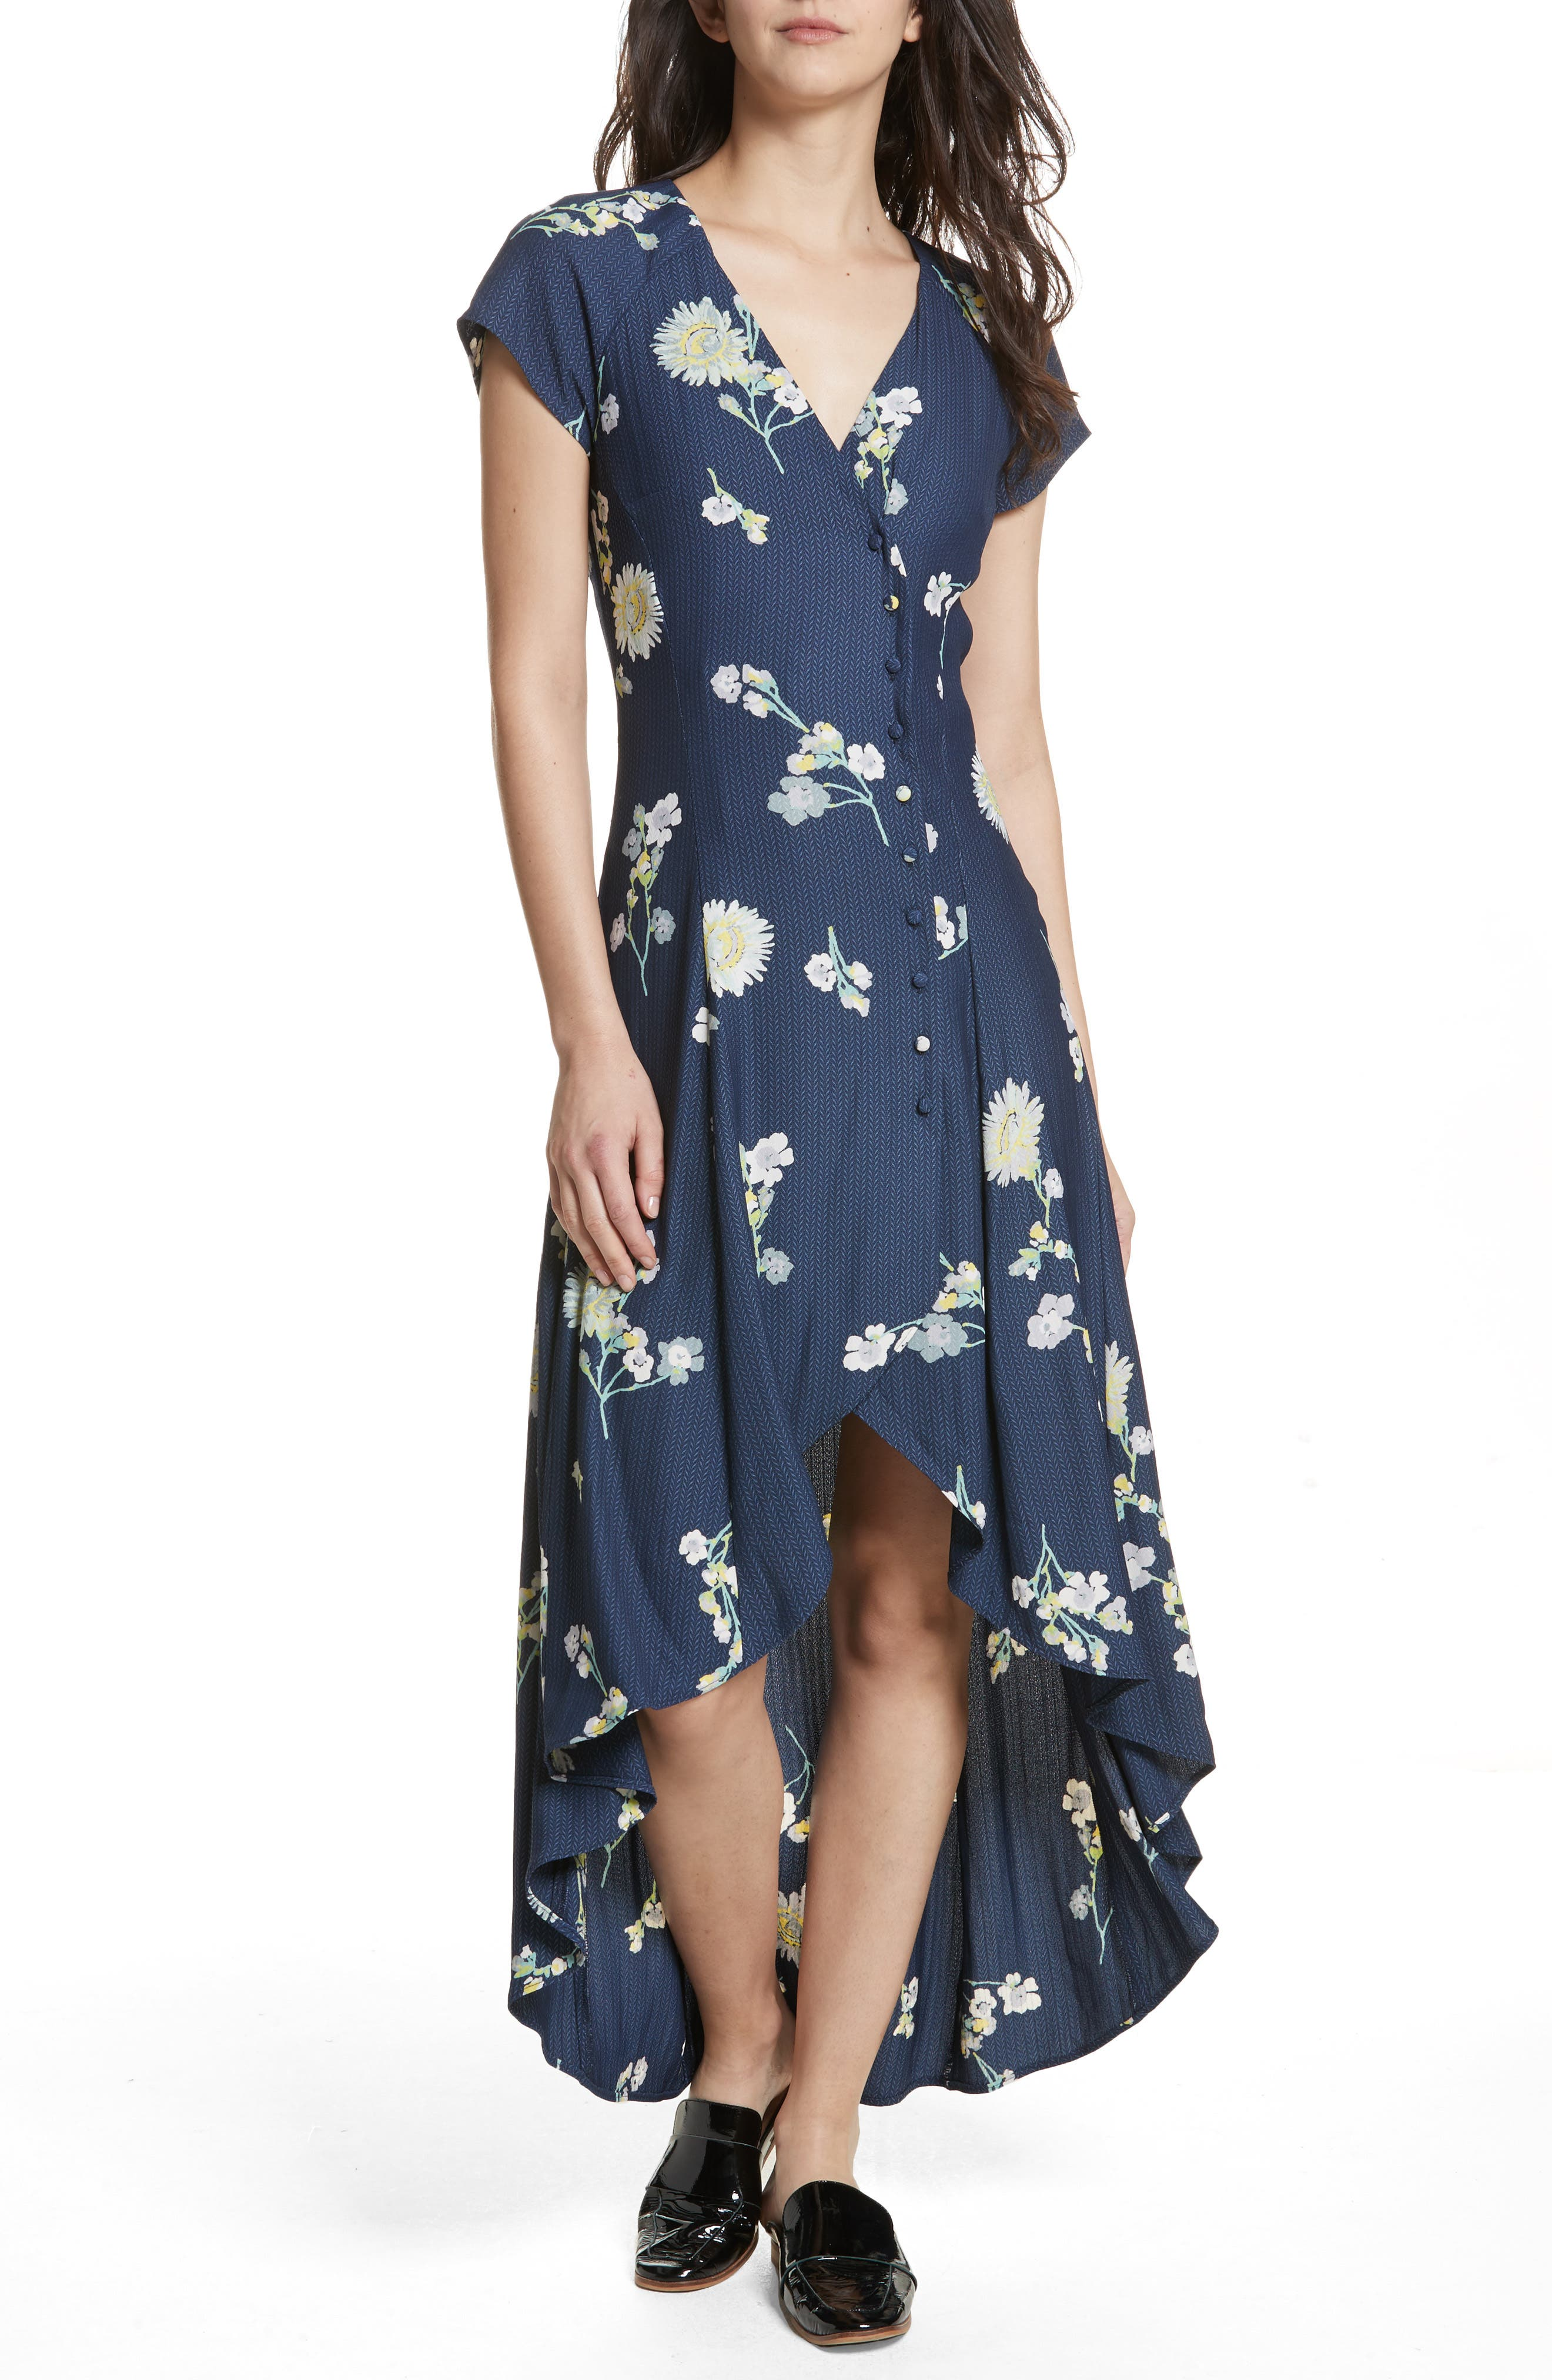 Lost in You Midi Dress,                             Main thumbnail 2, color,